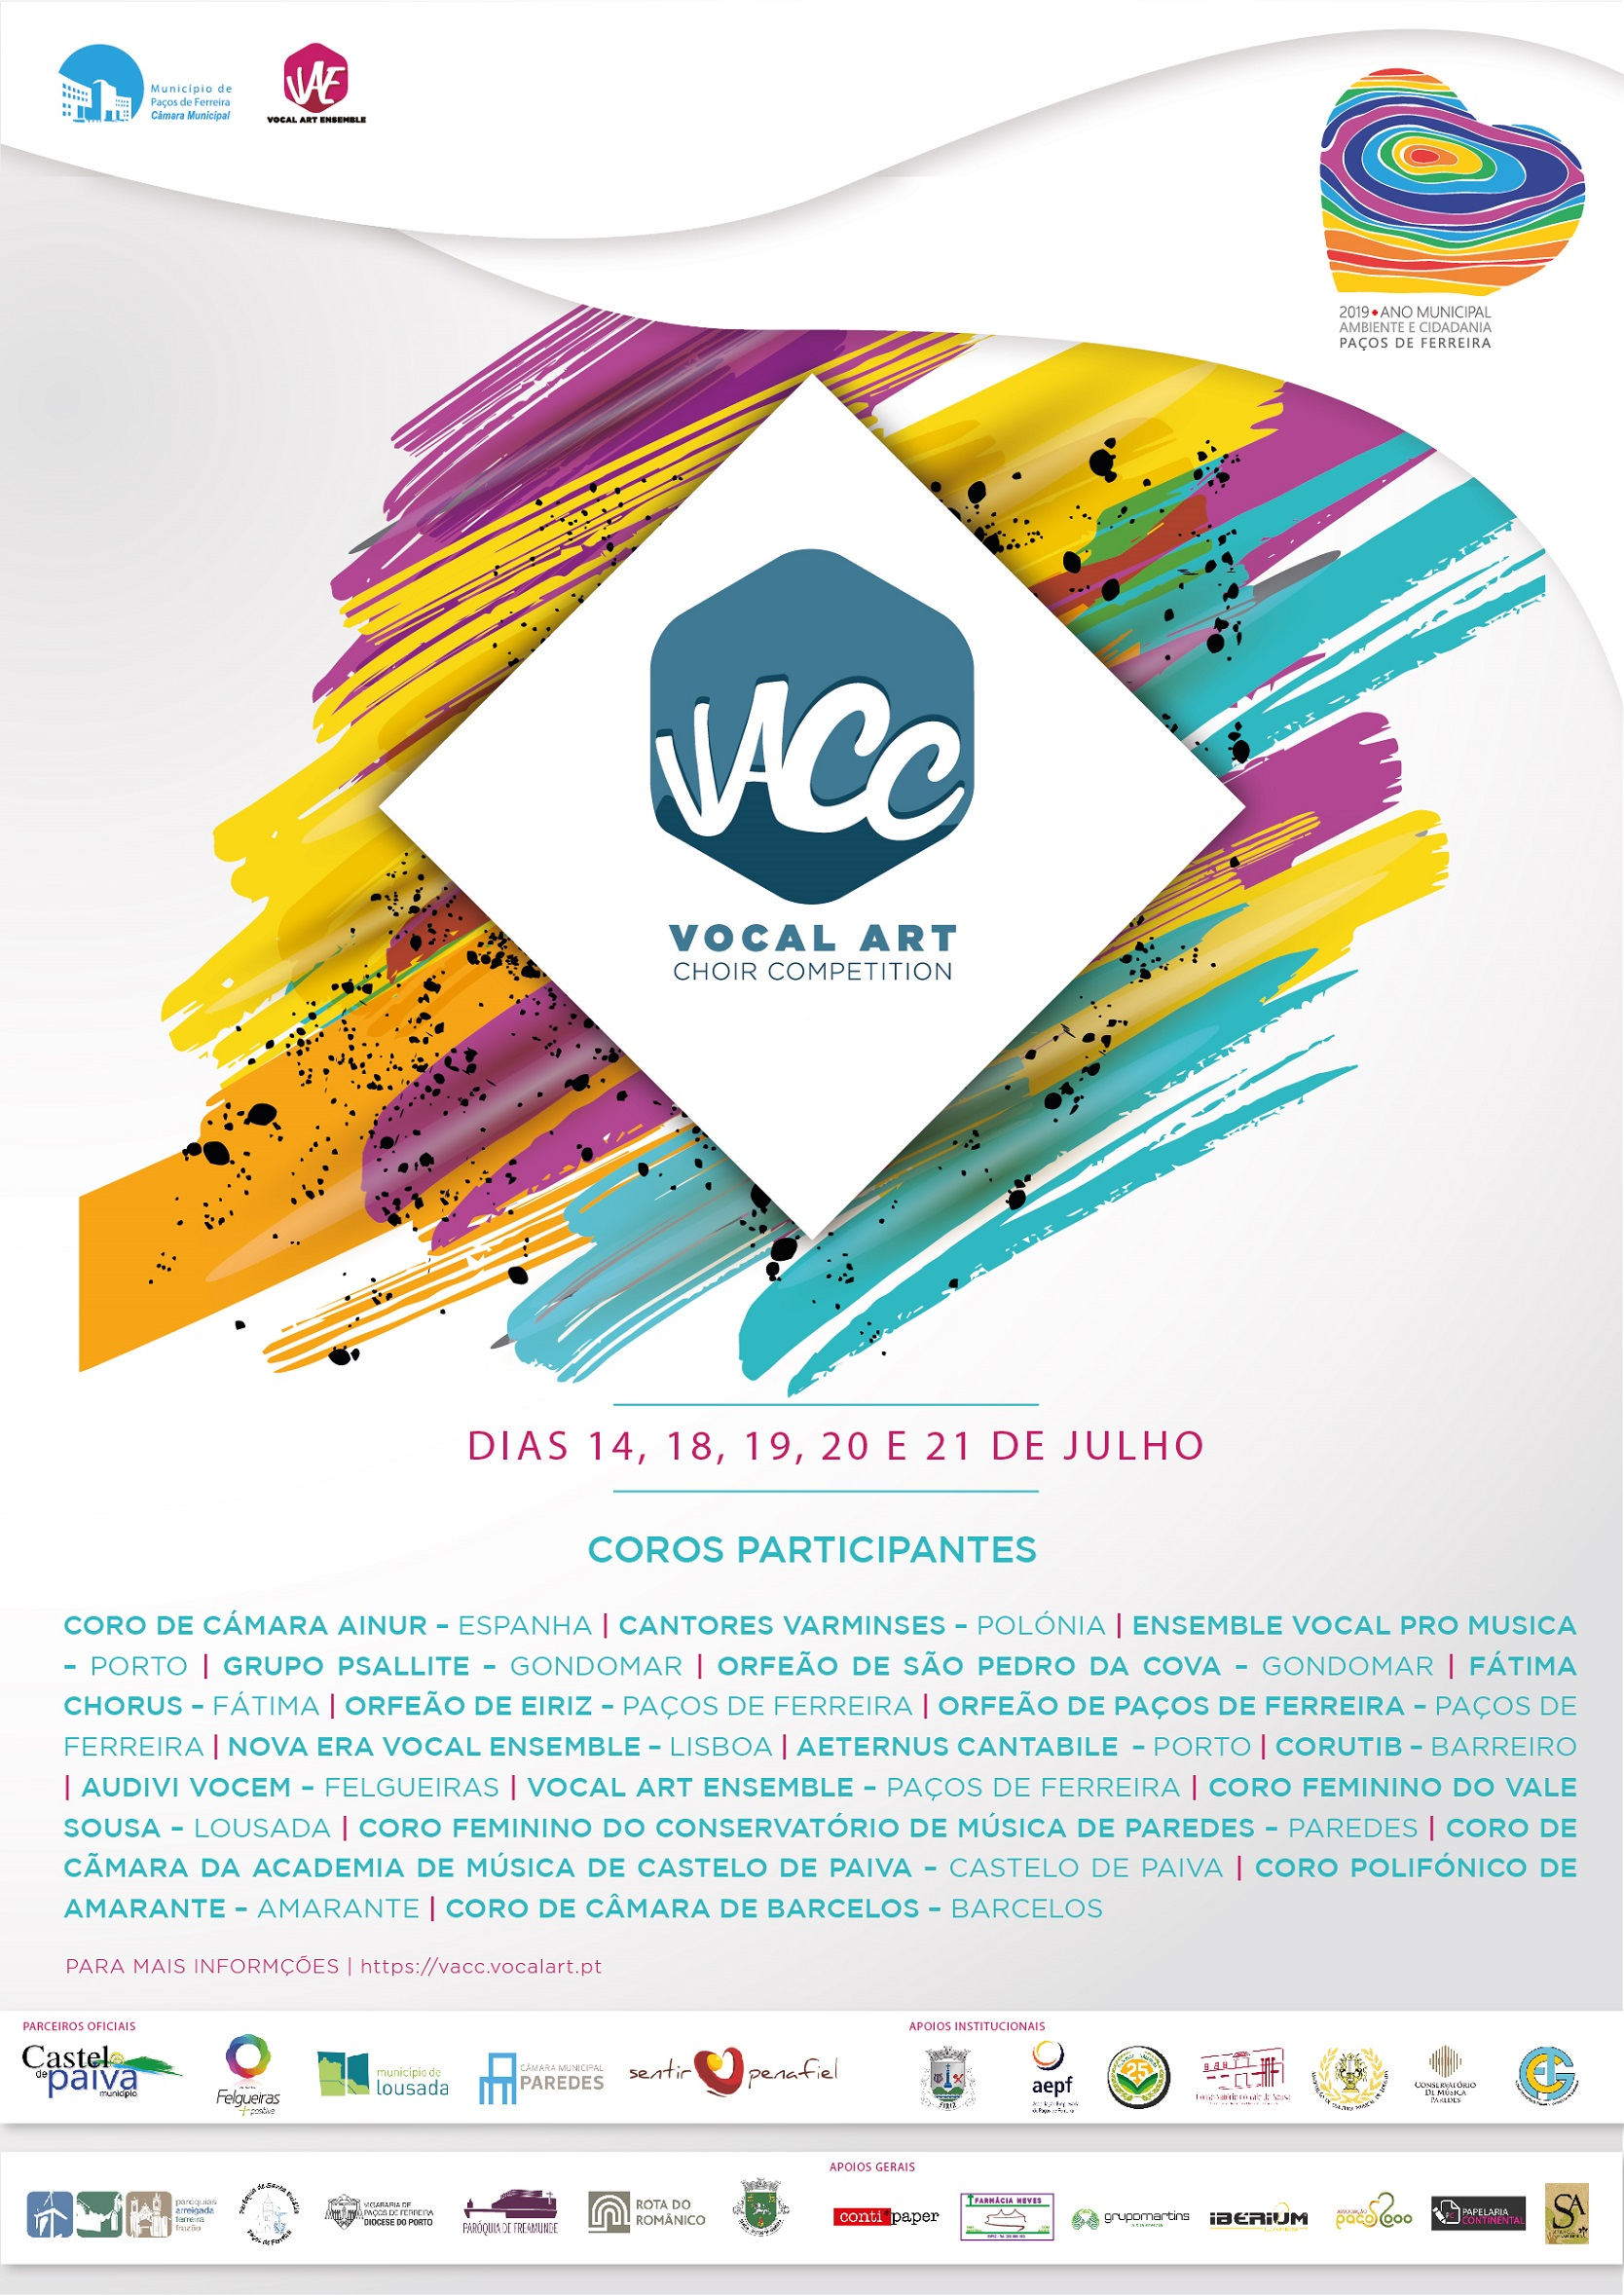 Welcome to VACC